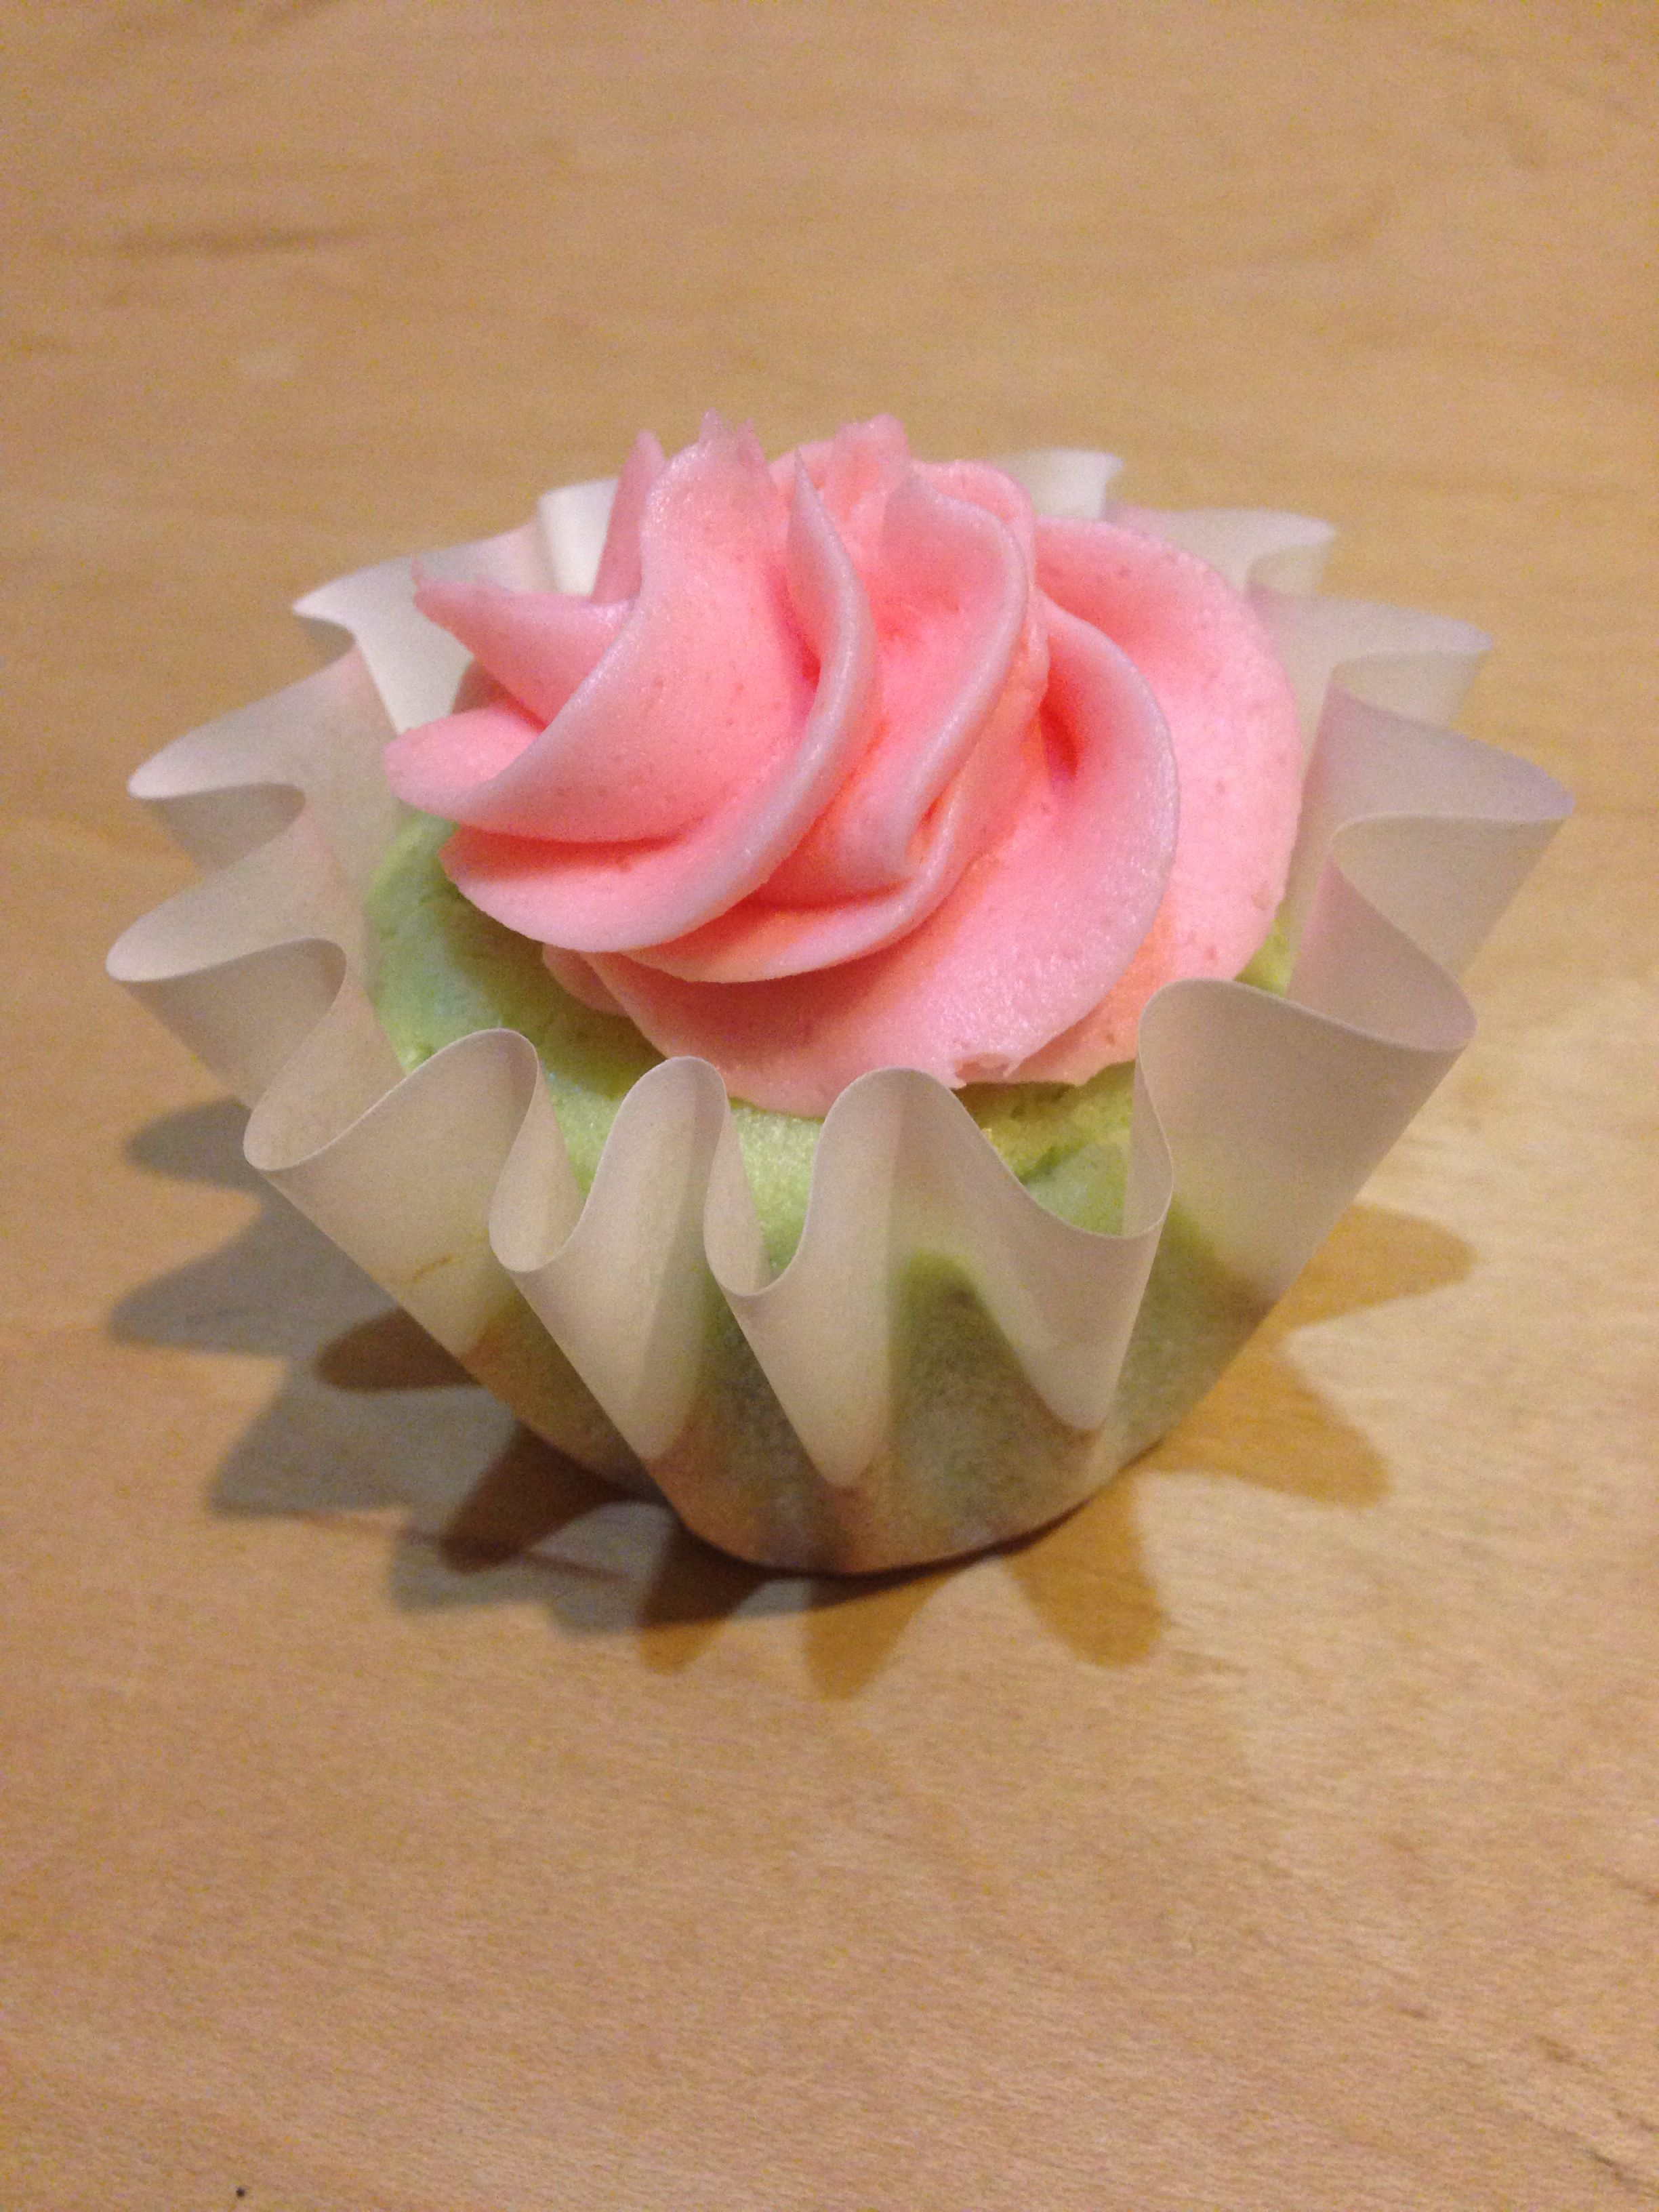 Full size strawberry lime aid cupcakes